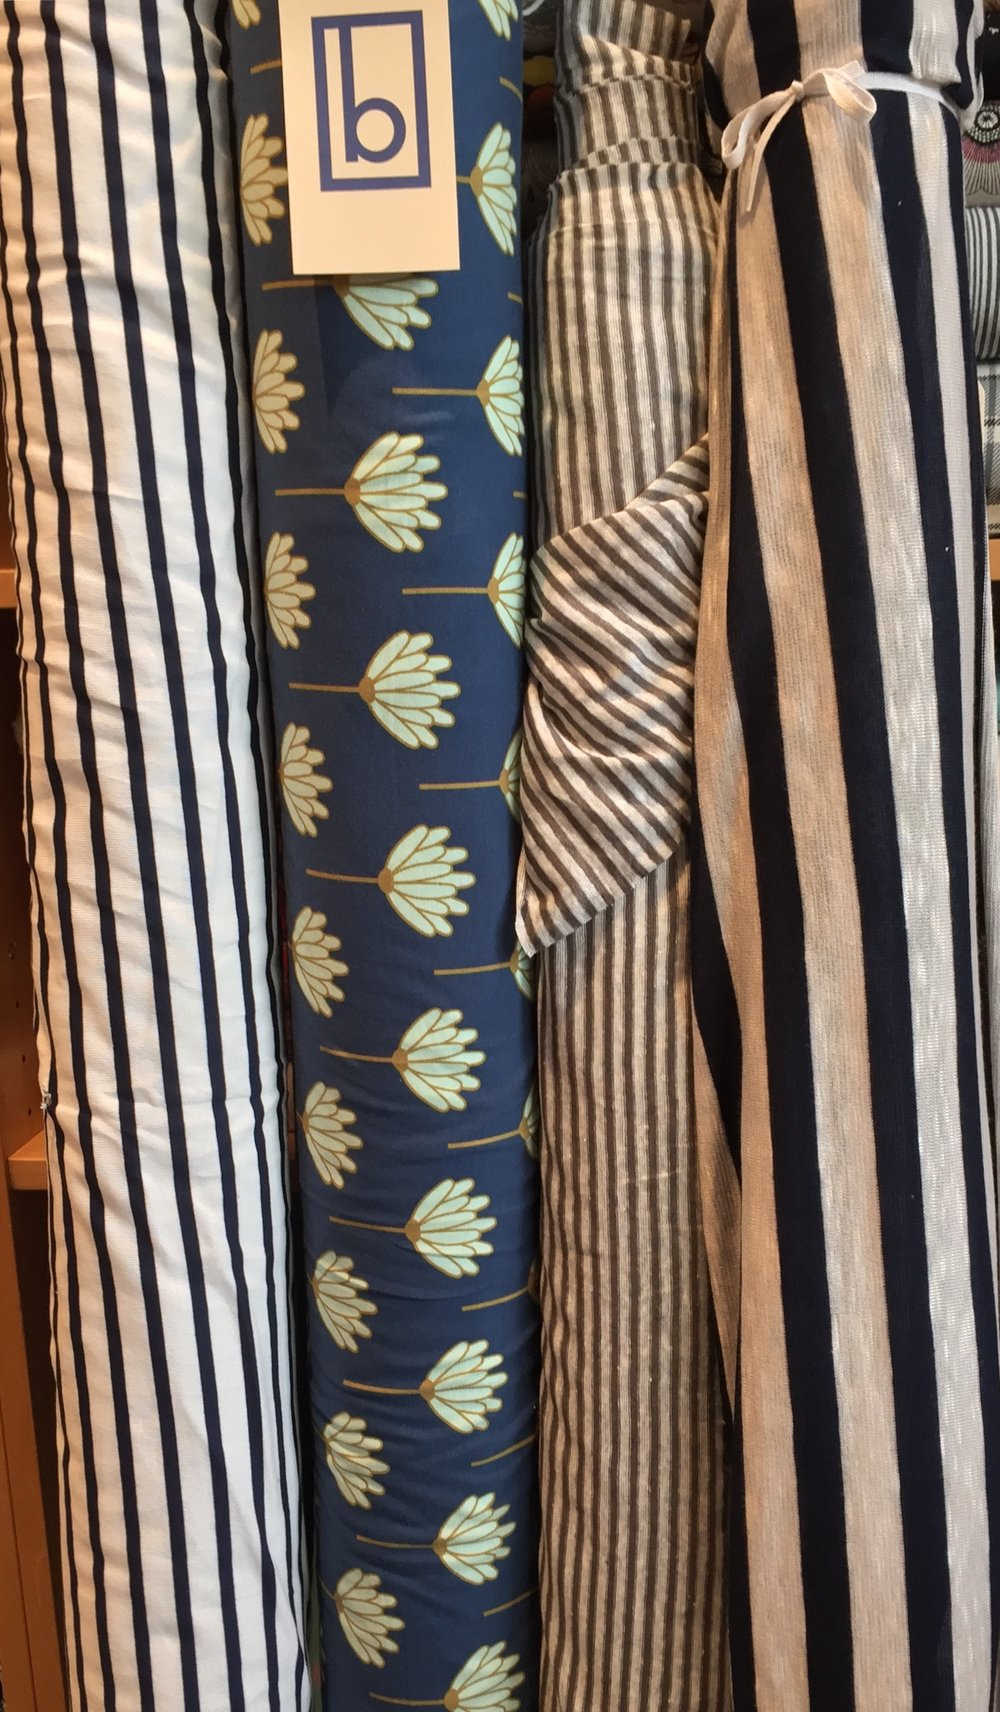 Stripes, stripes, stripes and flowers. More knits, of various weights, contents and drape. From left to right: mid-weight cotton, cotton/spandex, linen, and rayon.